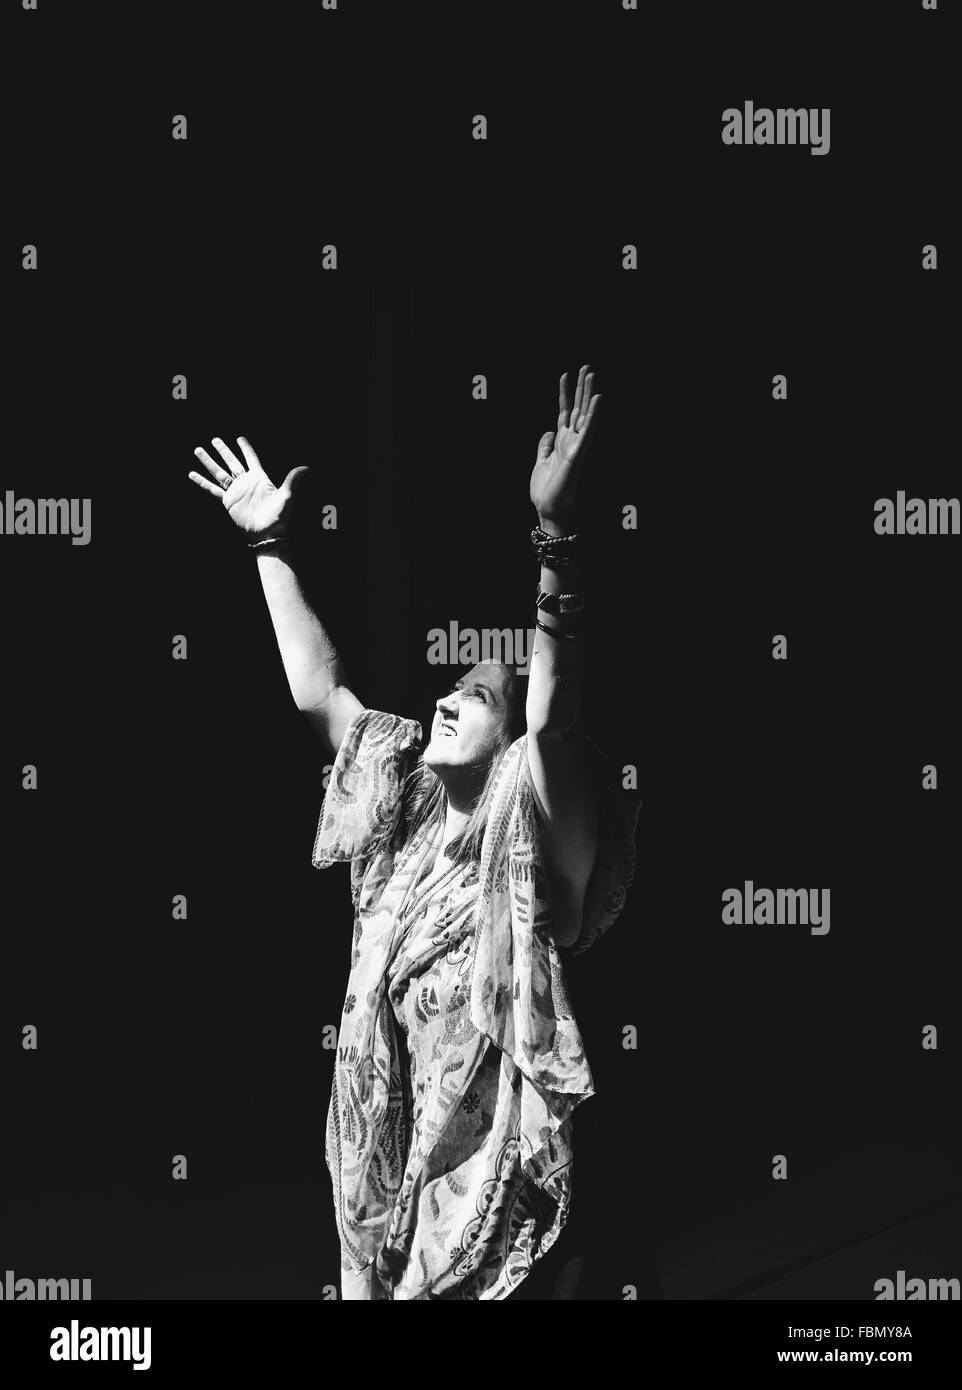 Young Woman Raising Hands Over Black Background Stock Photo